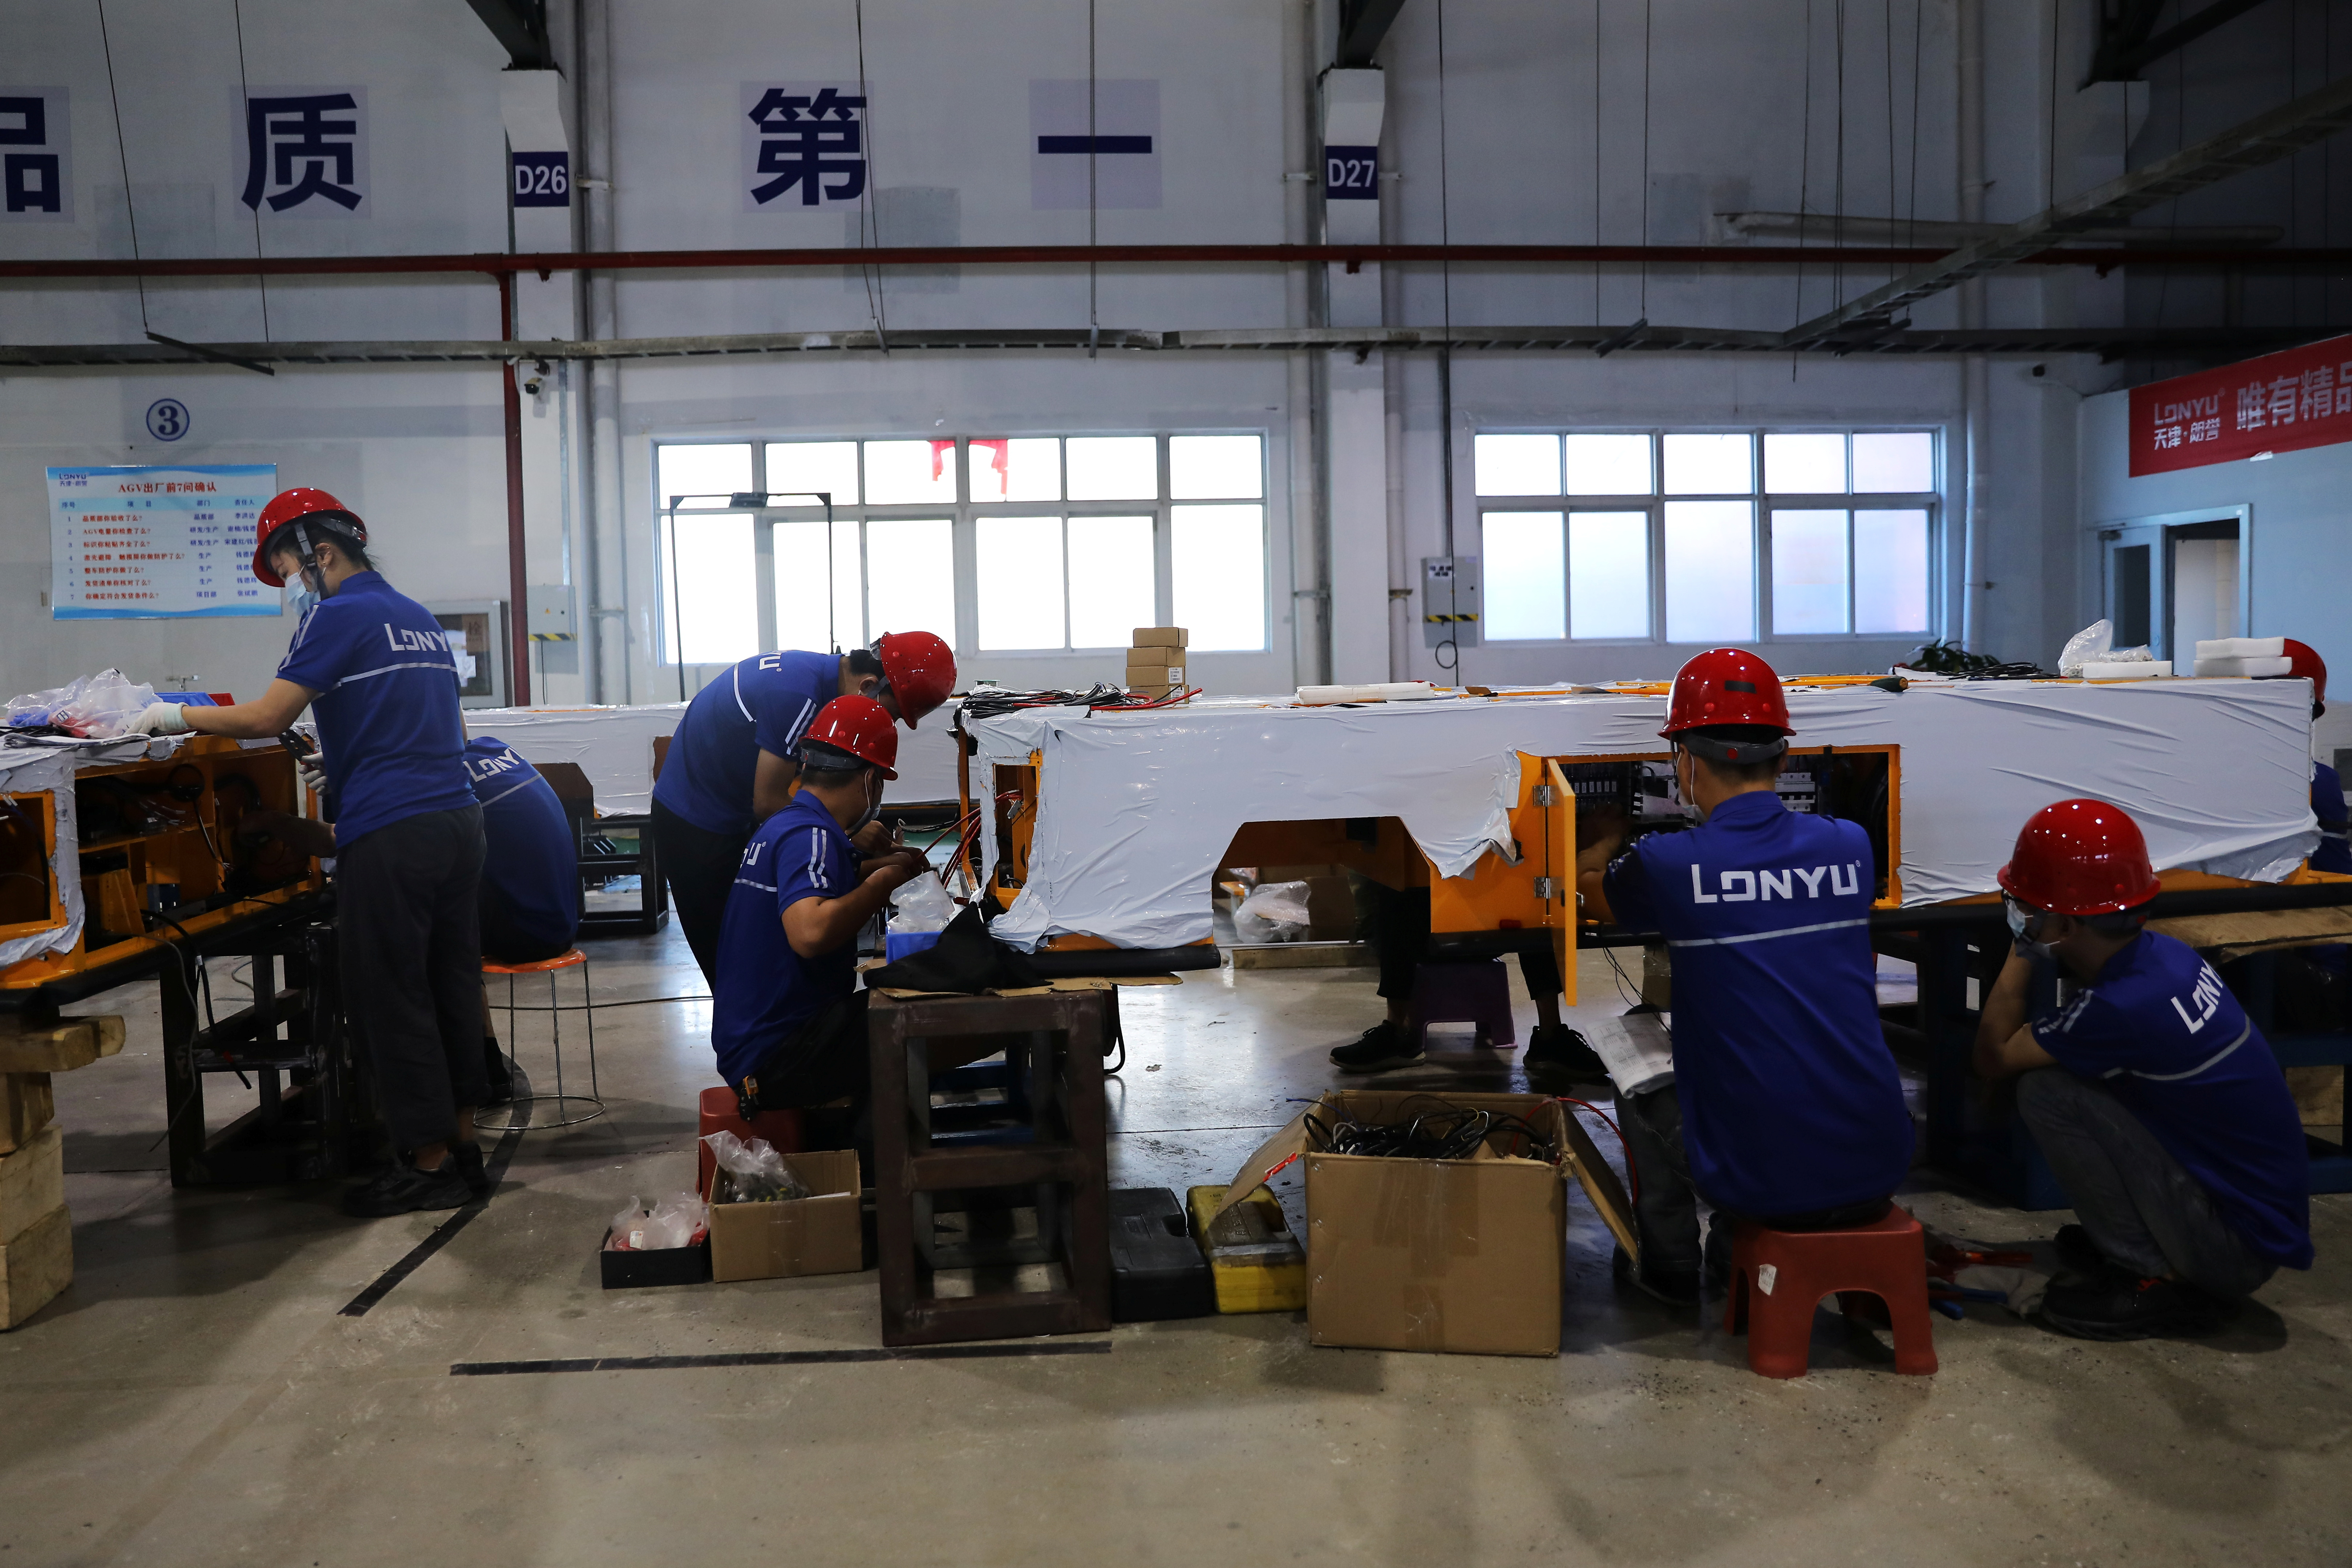 Employees work on assembling automated guided vehicles (AGV) at a Lonyu Robot Co factory in Tianjin, China, September 7, 2021. REUTERS/Tingshu Wang